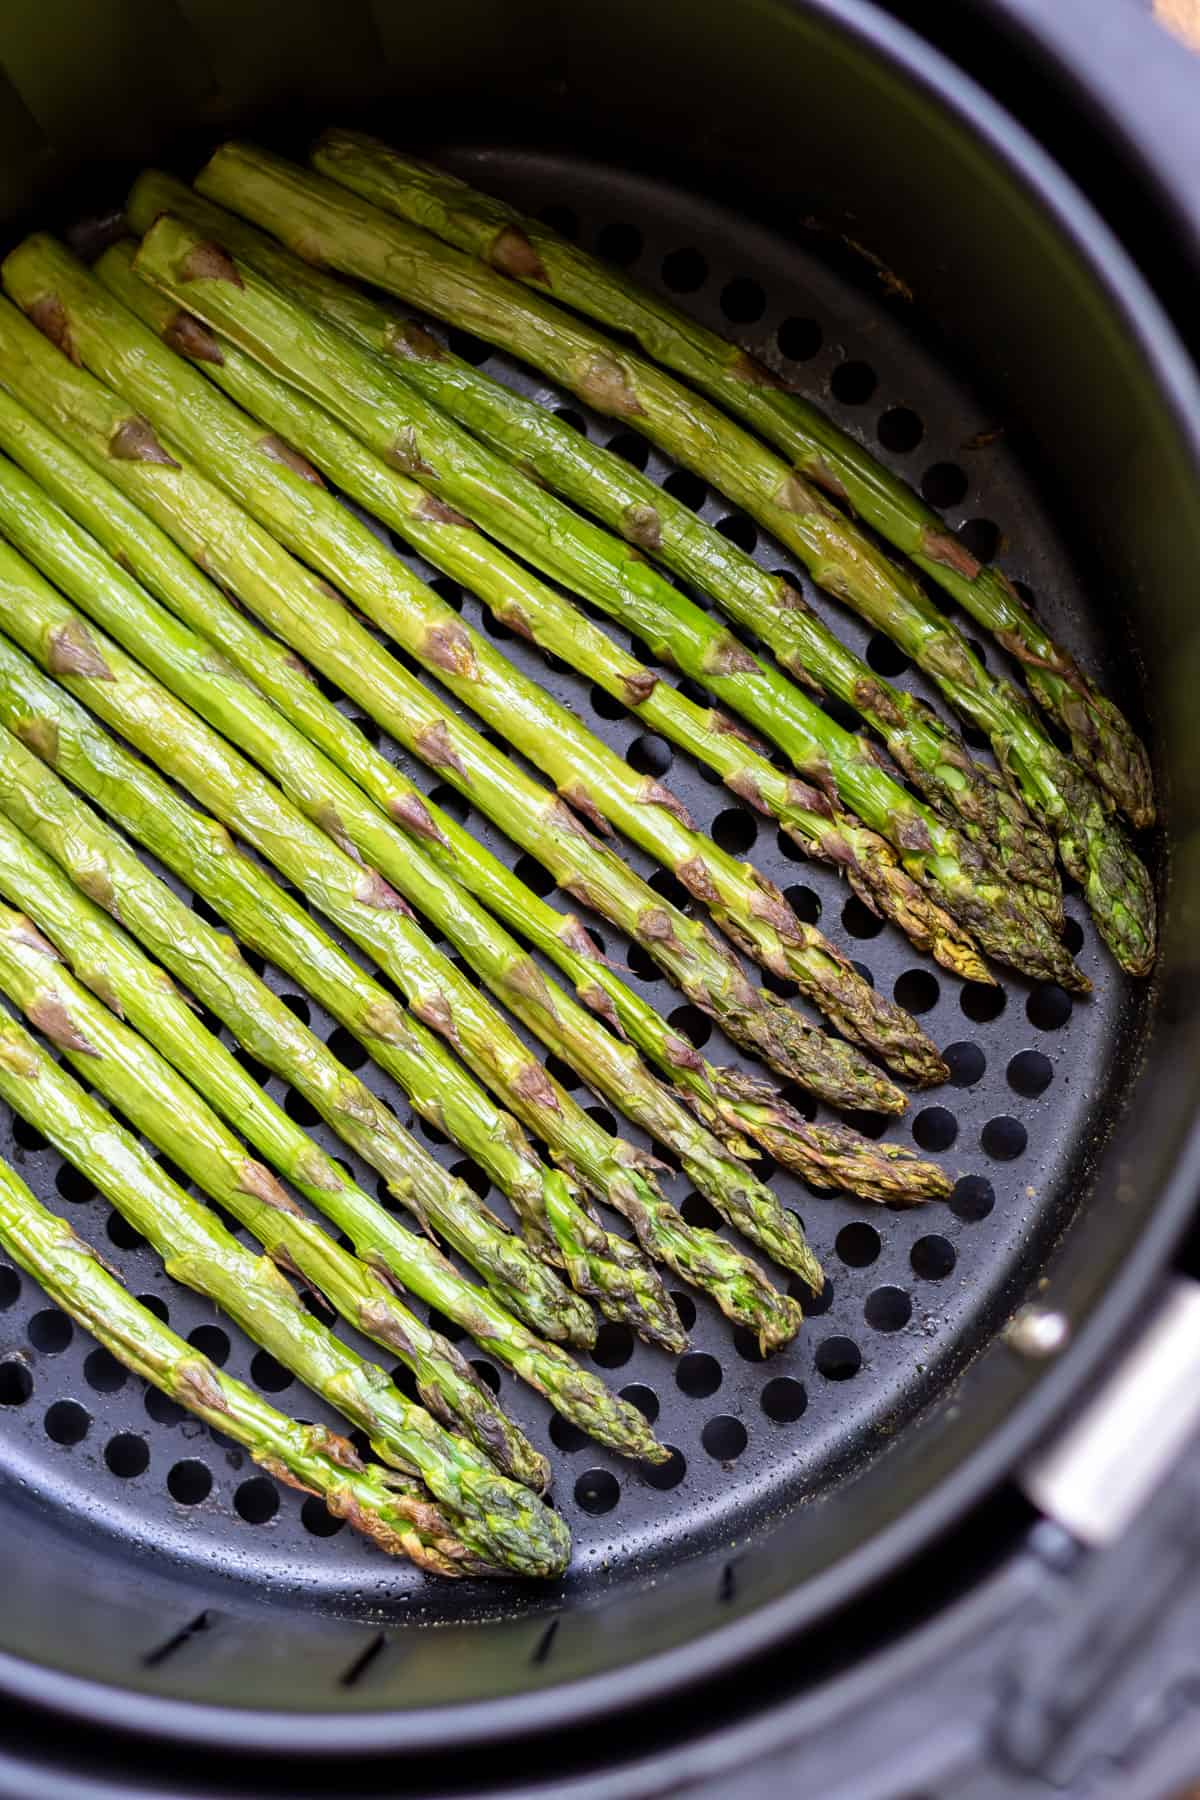 Cooked asparagus in an air fryer basket.